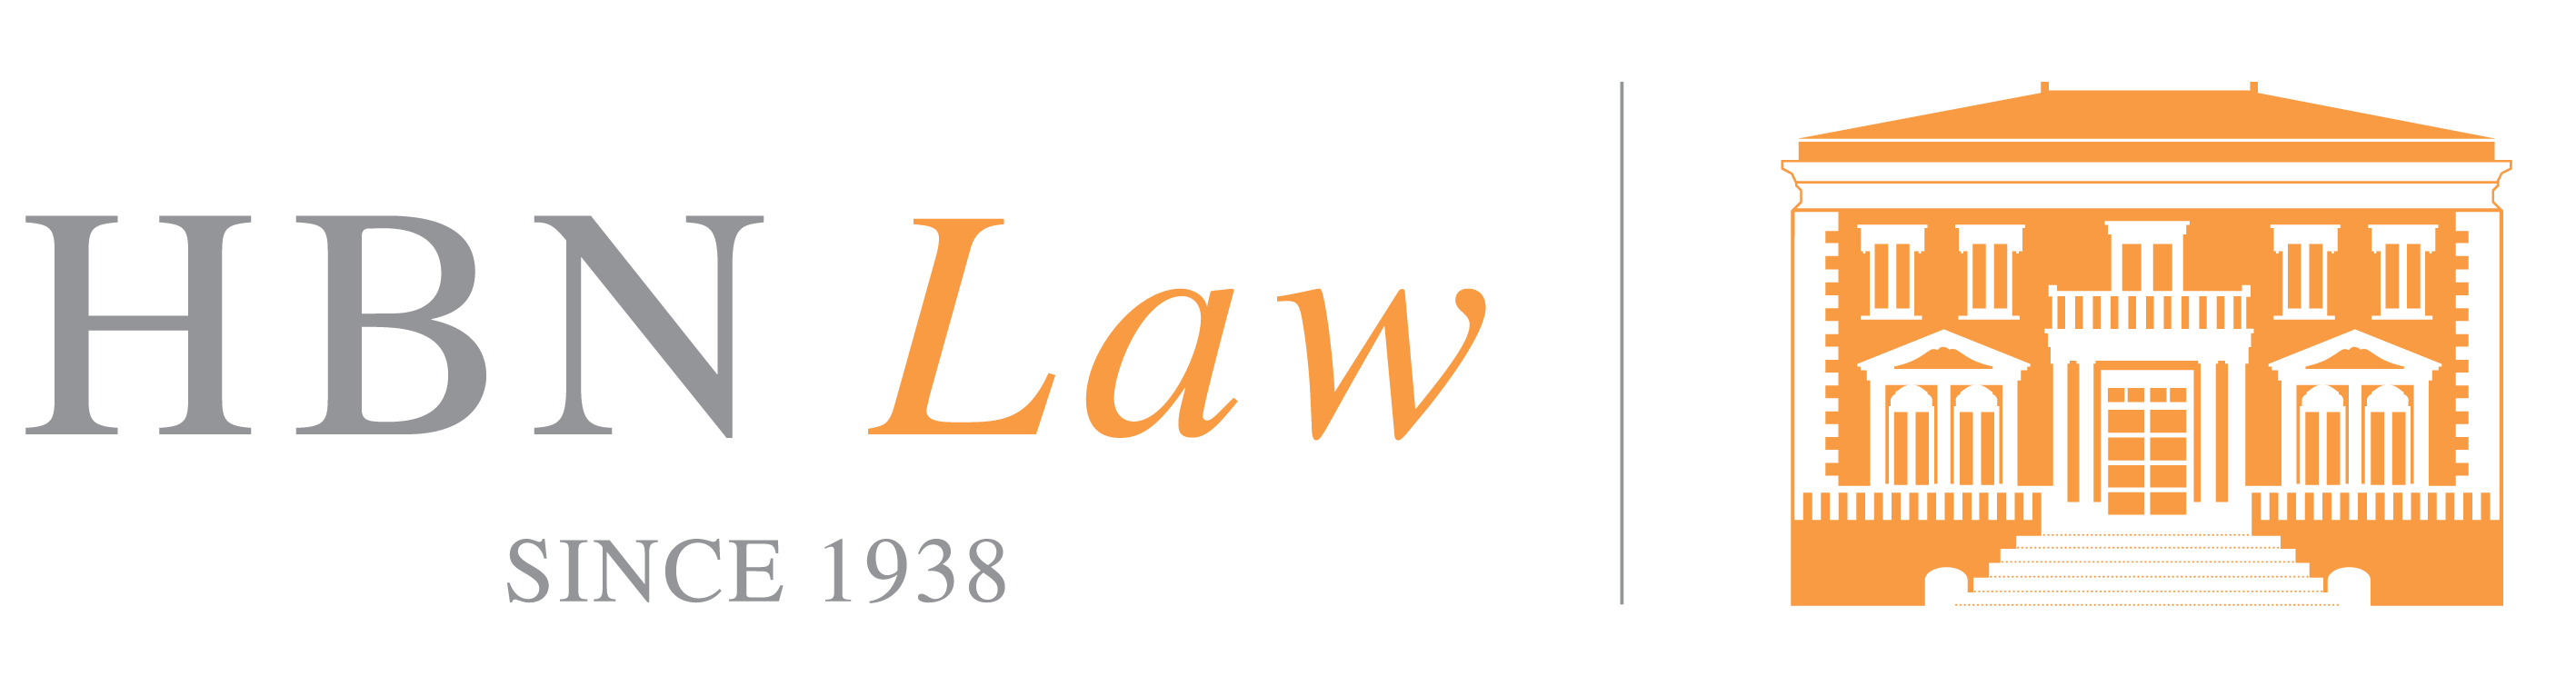 HBN_LAW_1